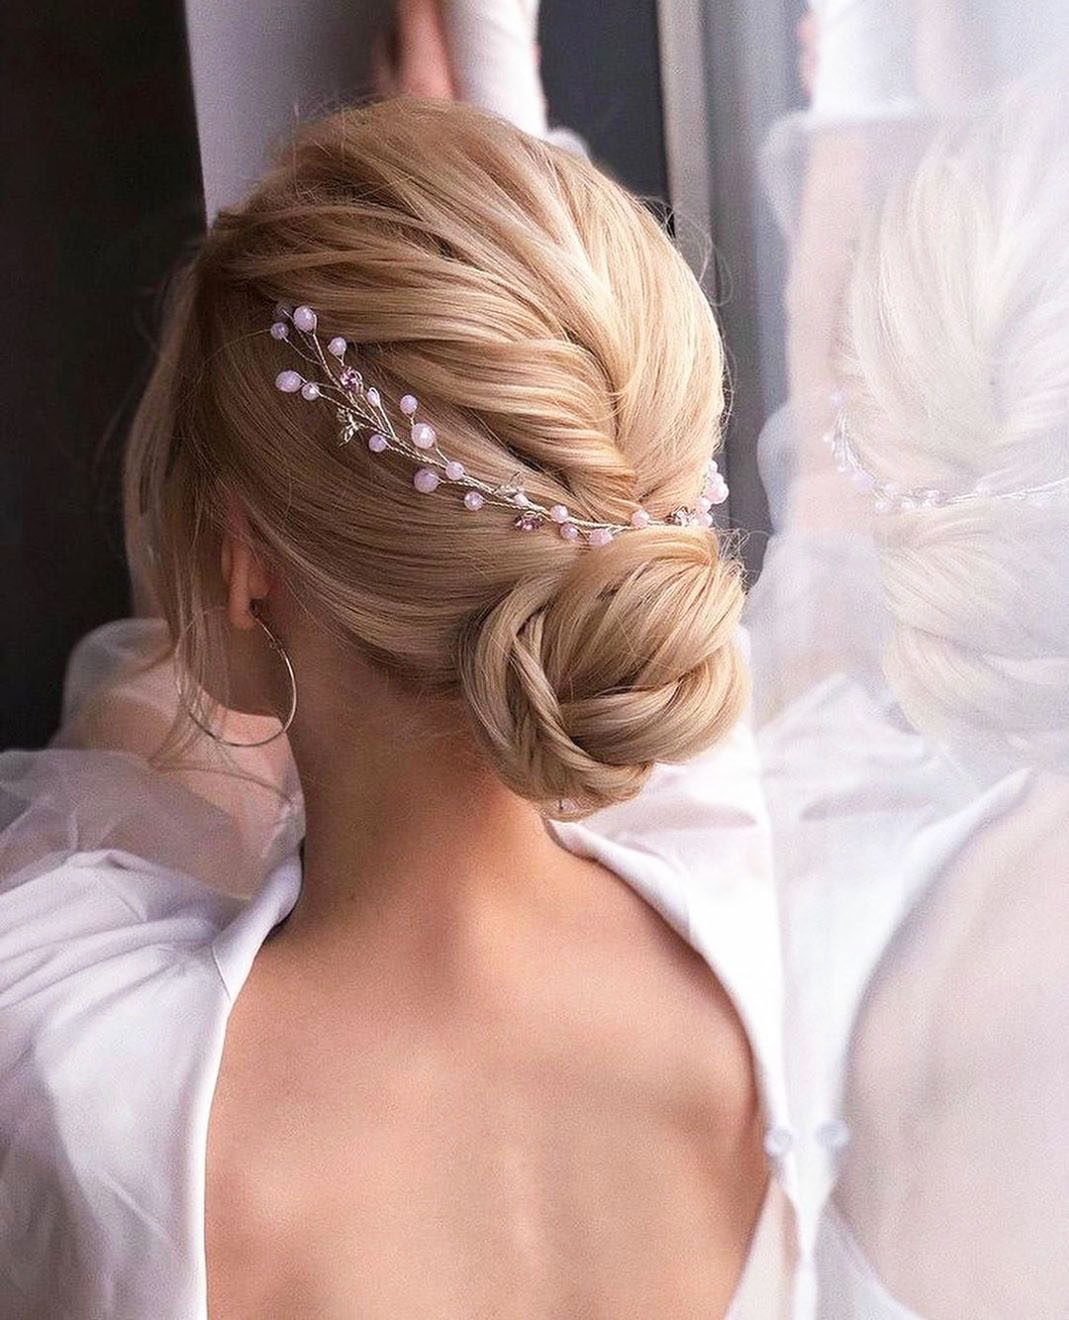 Hairstyles Winter 2020 ideas from hair stylists 17 2